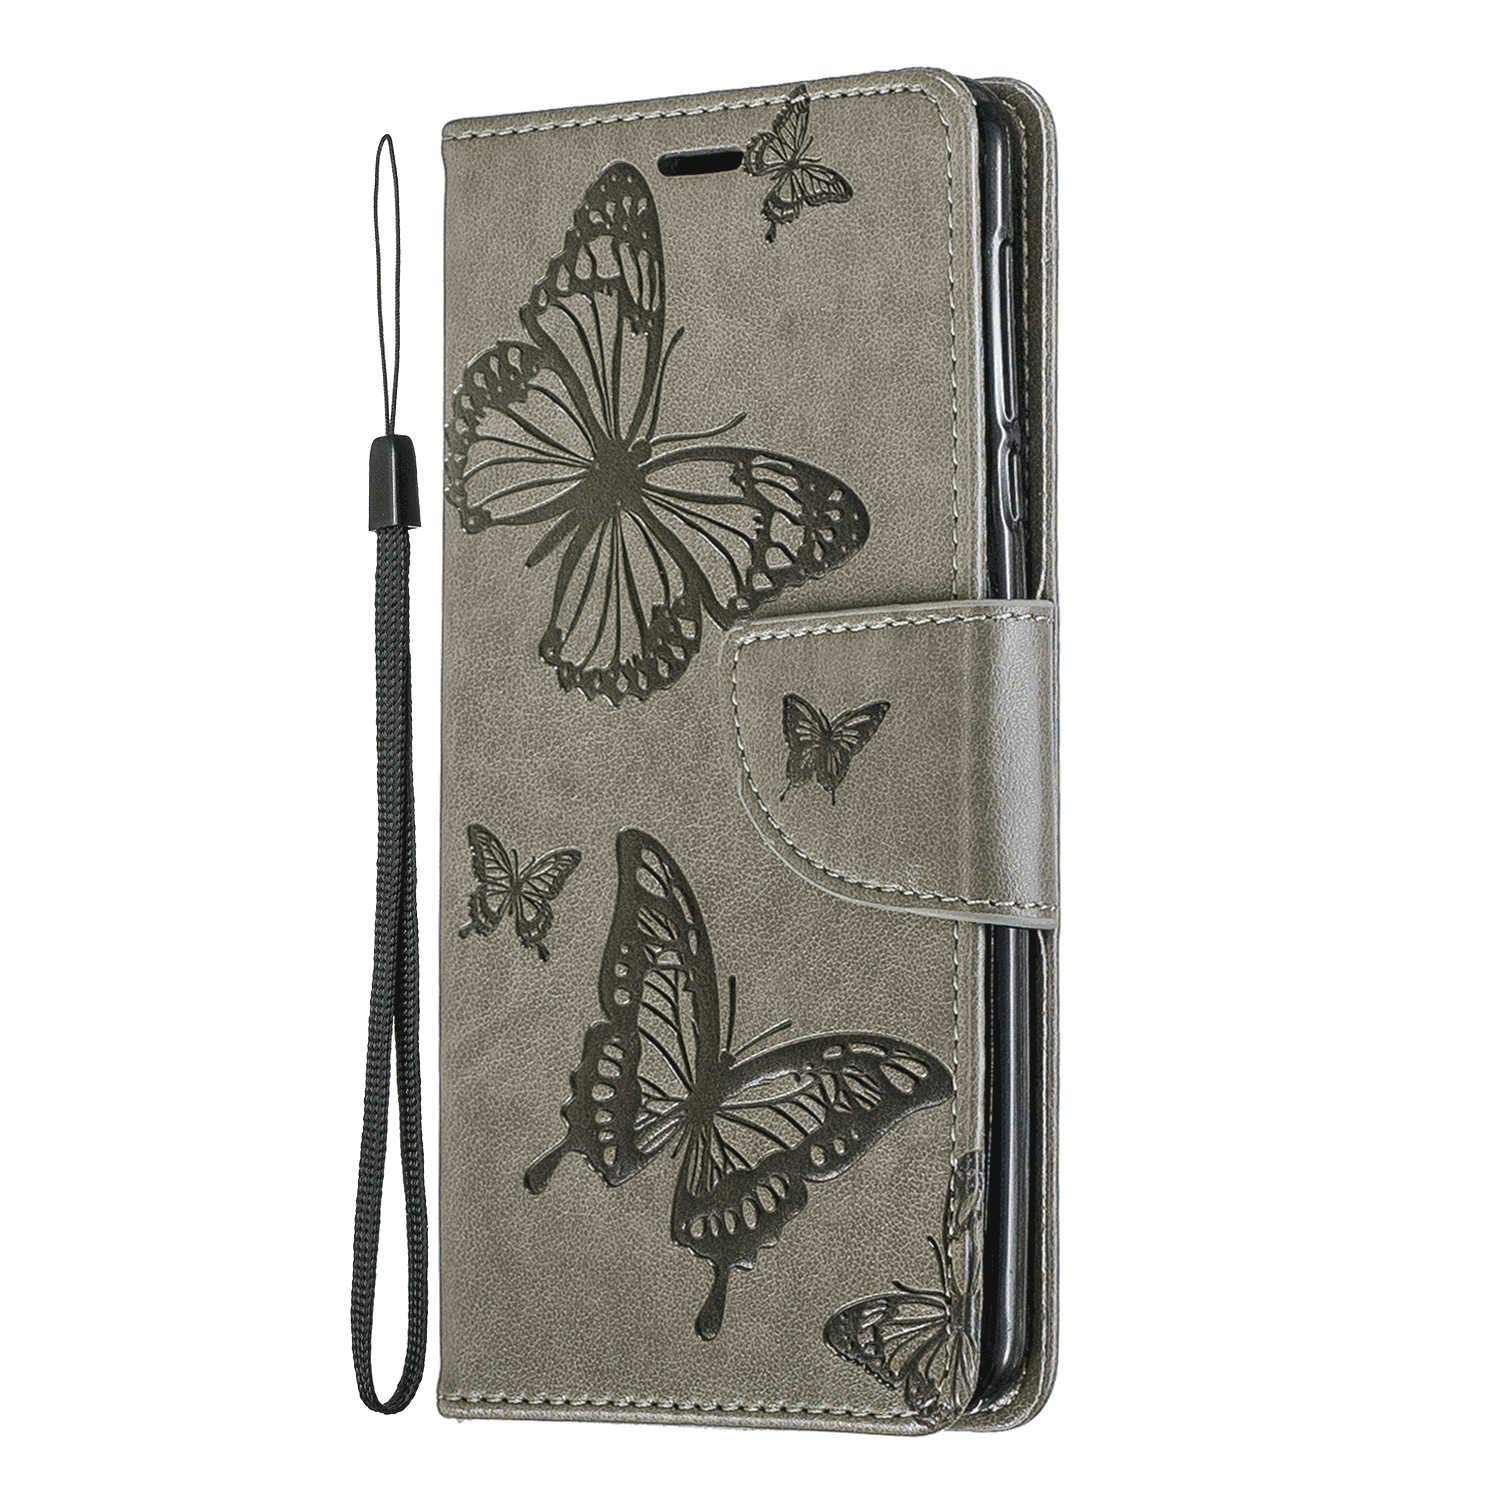 RuiJinHao Translated Flip Case New Free Shipping Fit for Samsung Galaxy Card Ext Holders A70